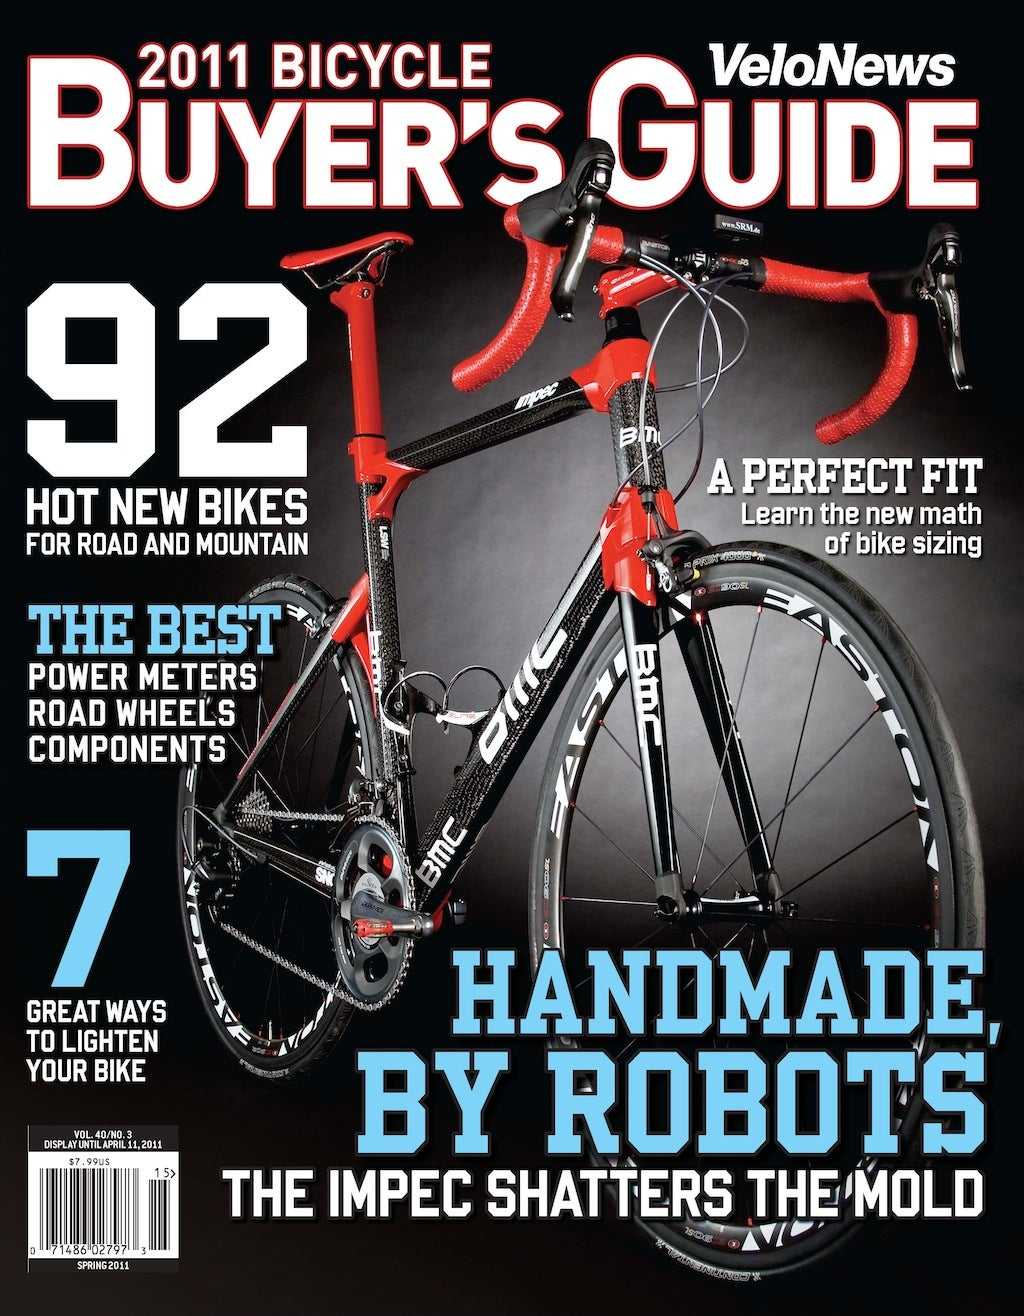 velonews 2011 bicycle buyer s guide velonews com rh velonews com  velonews buyers guide 2016